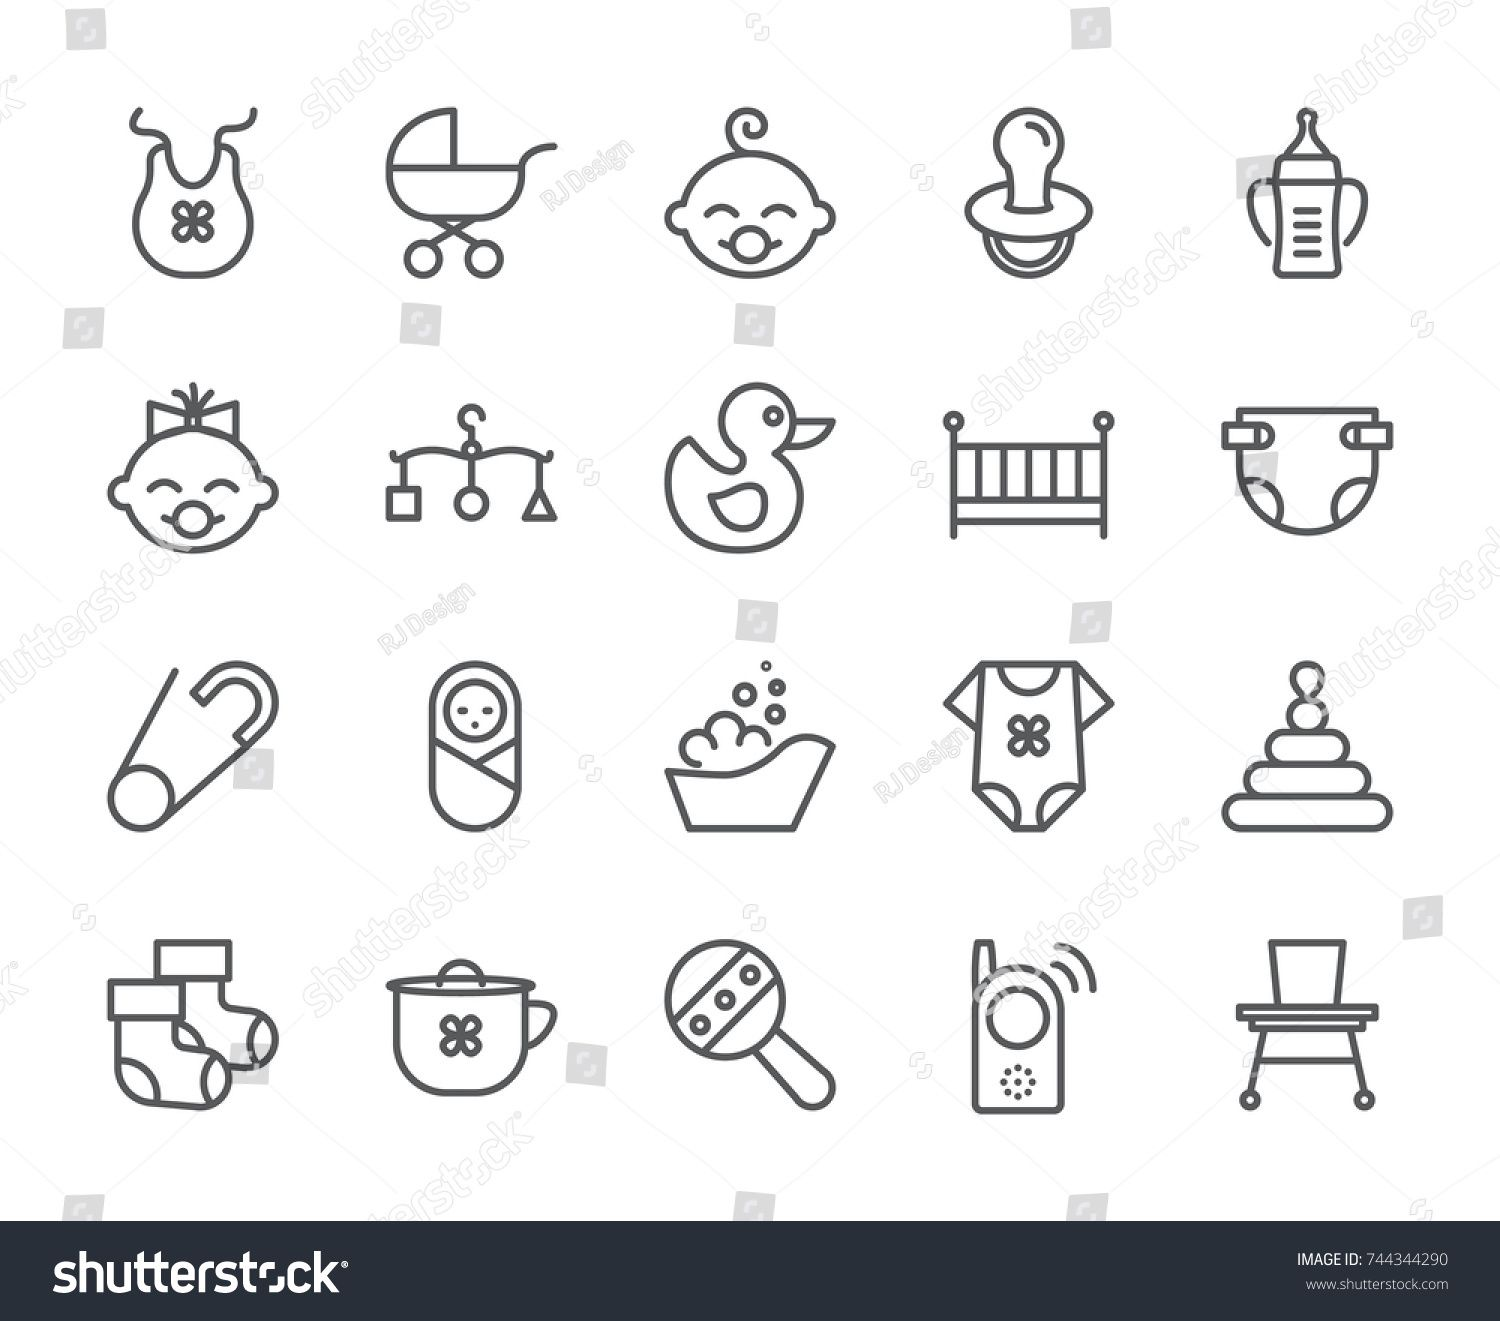 Baby Theme Pixel Perfect 48x48 Icons. Pictograms Of